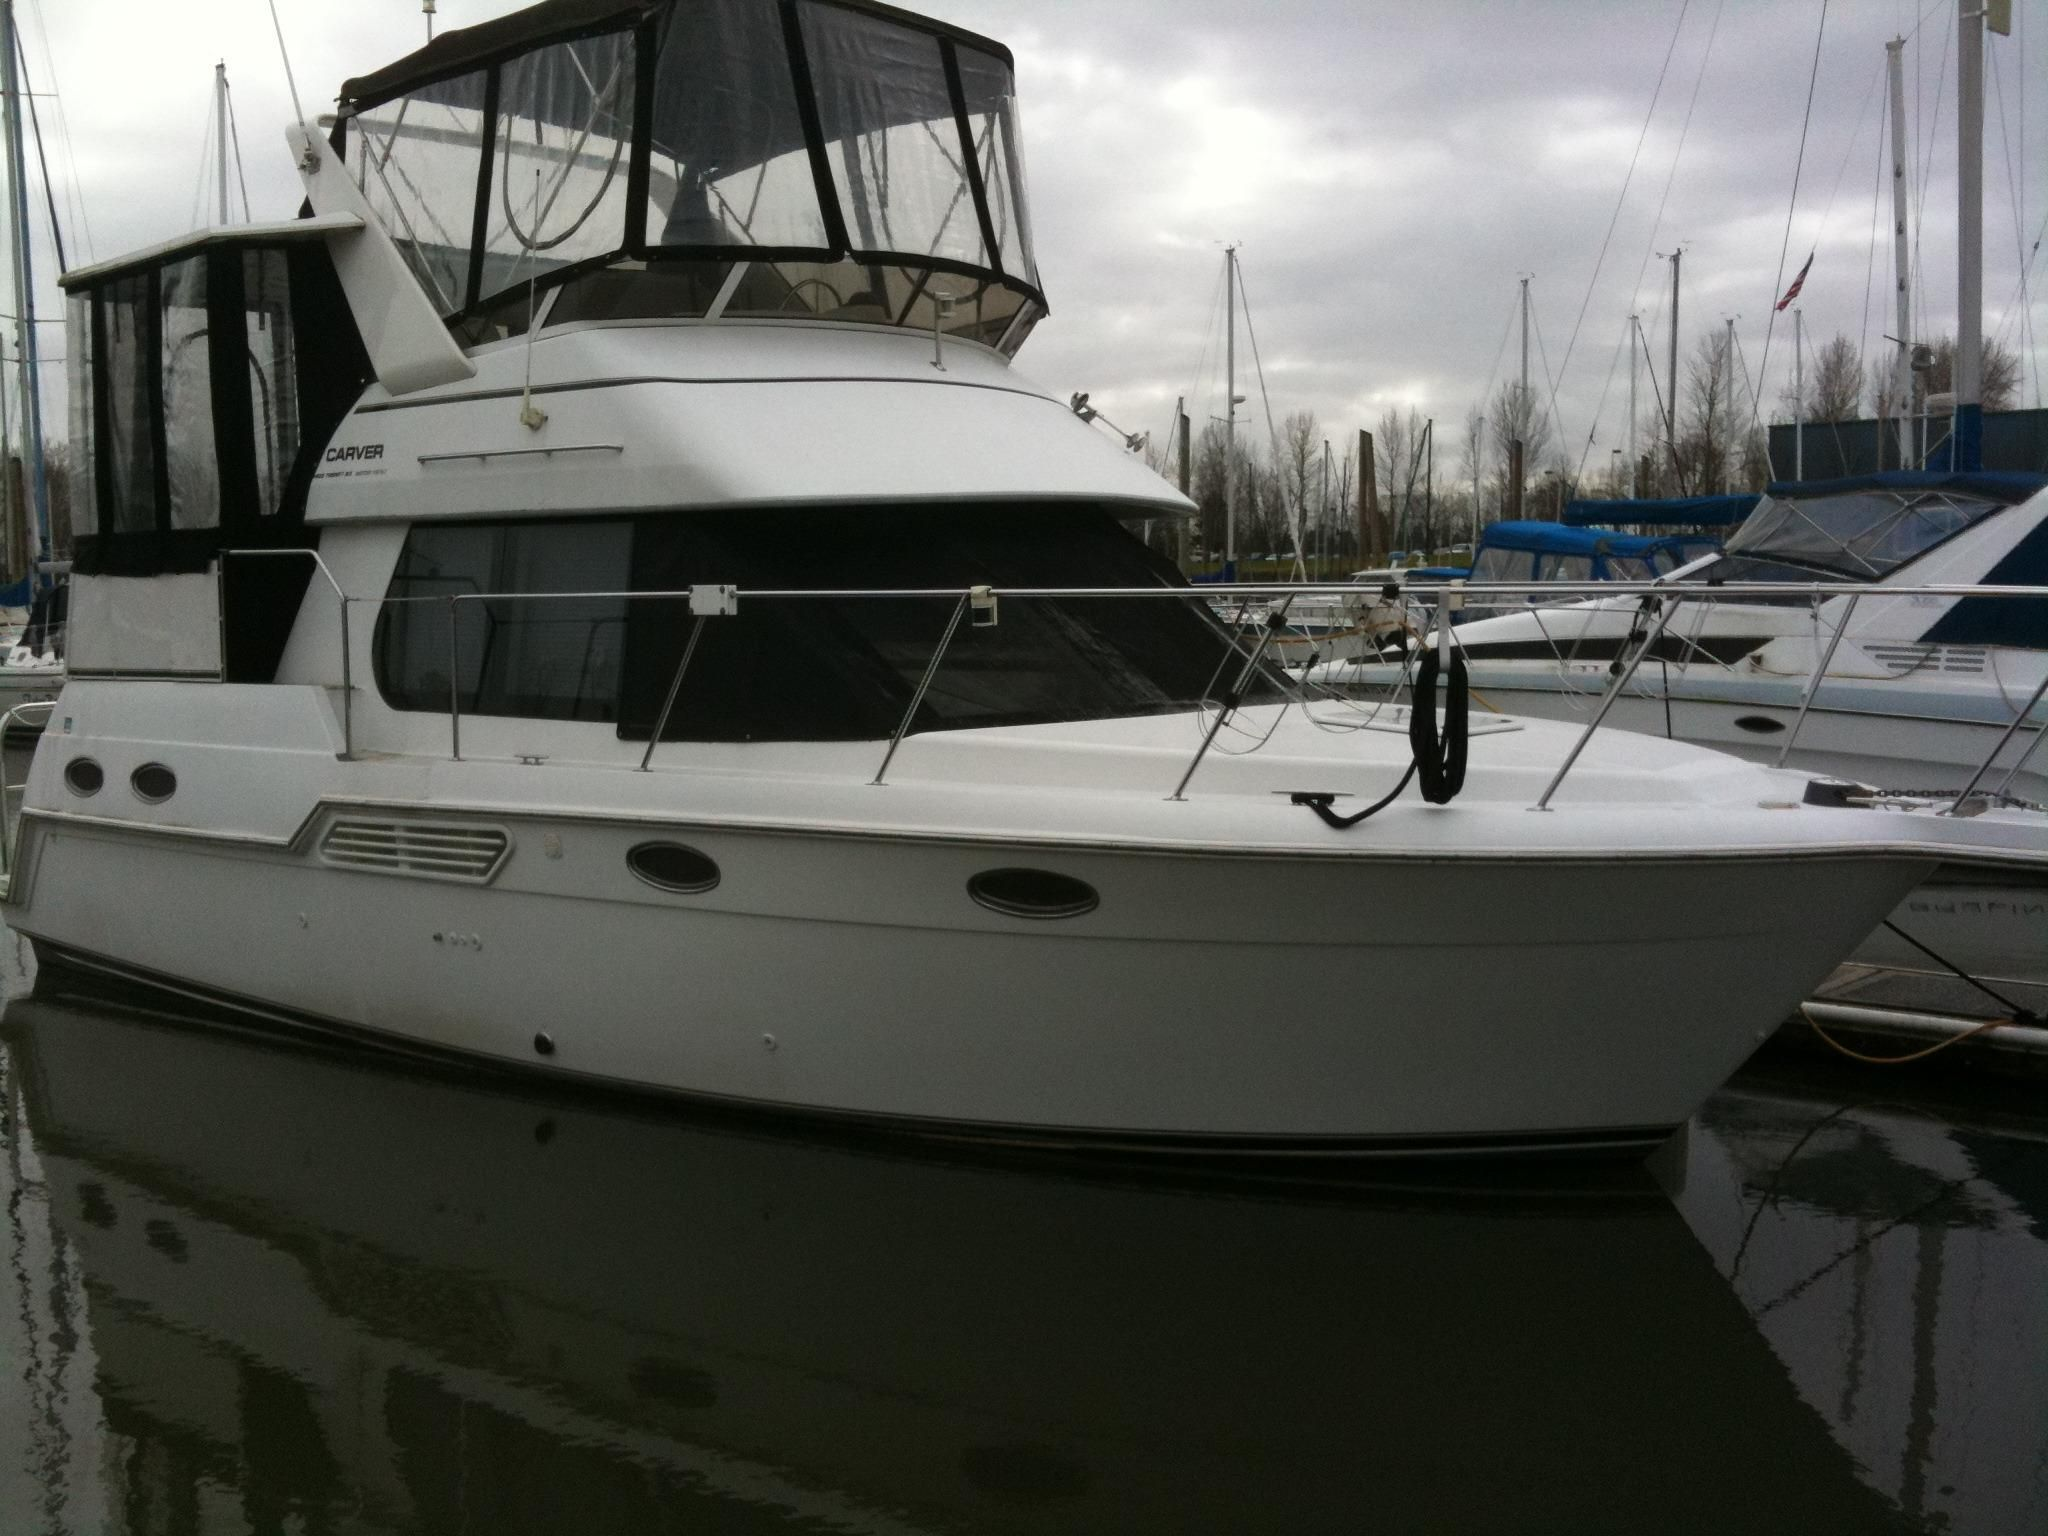 2000 carver 326 aft cabin motor yacht power boat for sale for Large motor yachts for sale